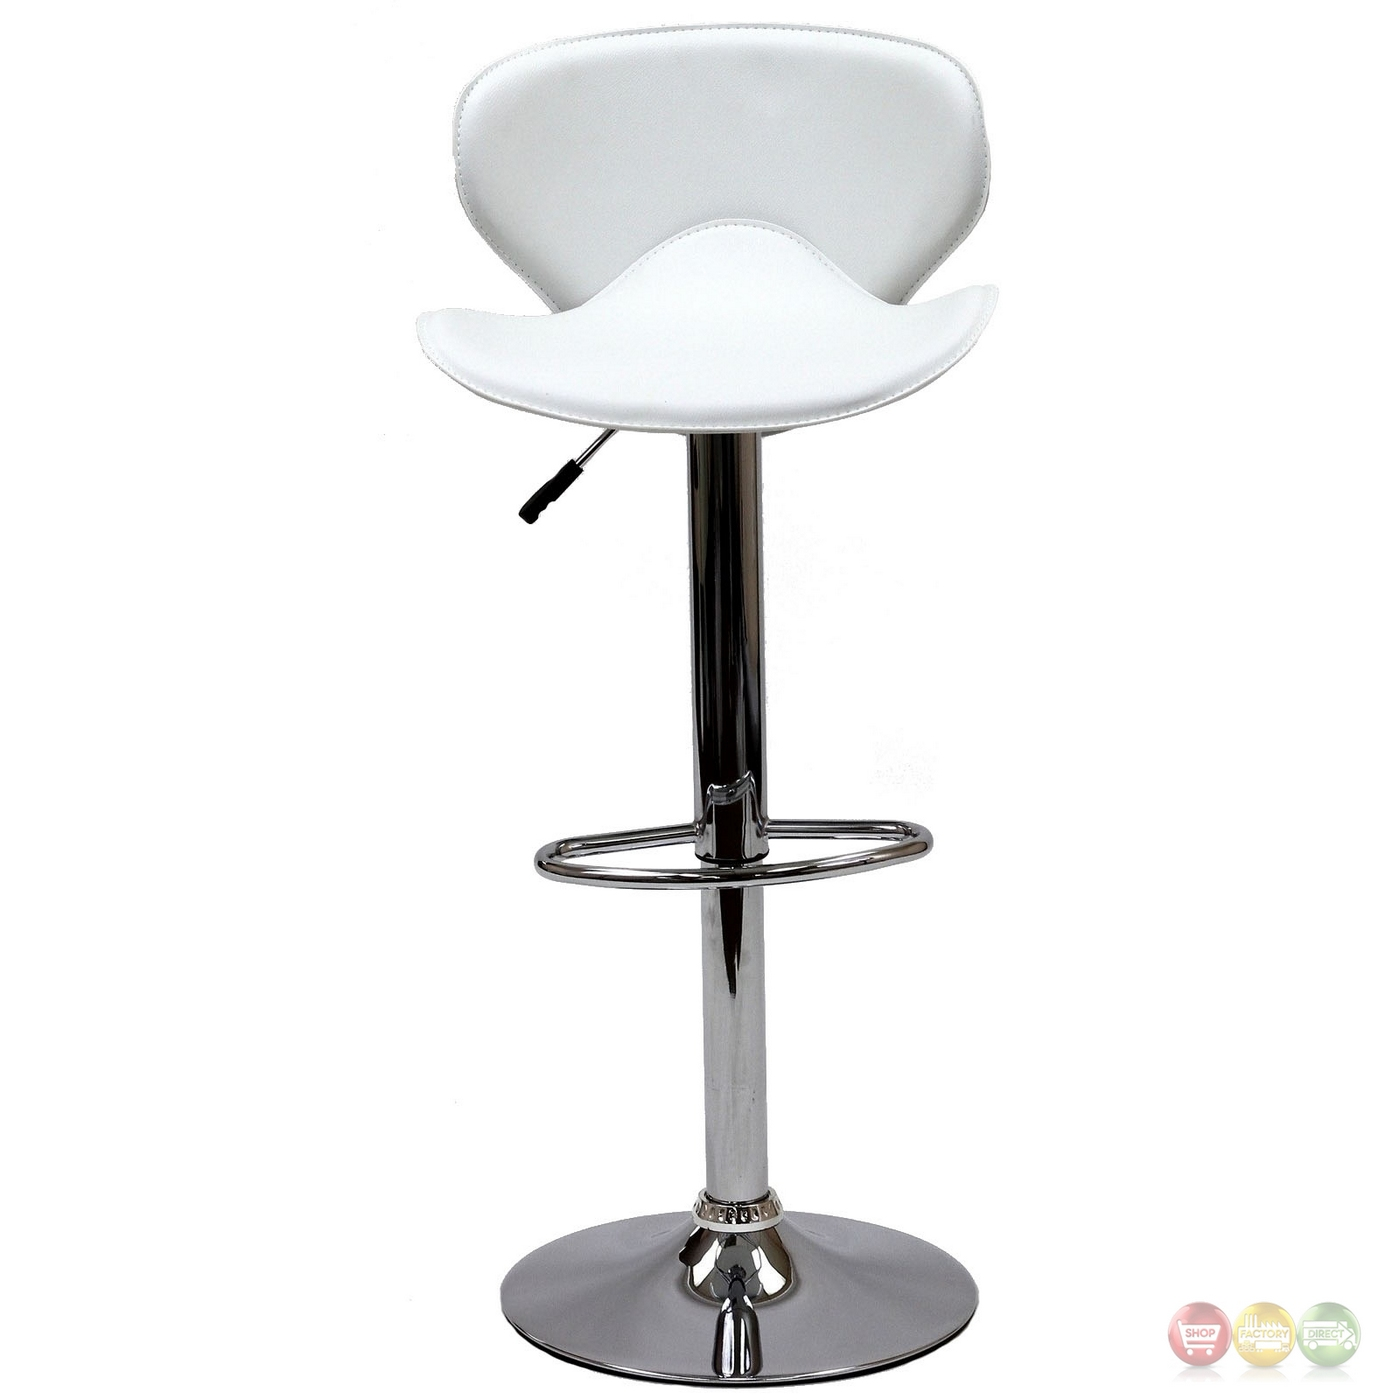 Ergonomic Bar Stools Booster Modern Ergonomic Winged Bar